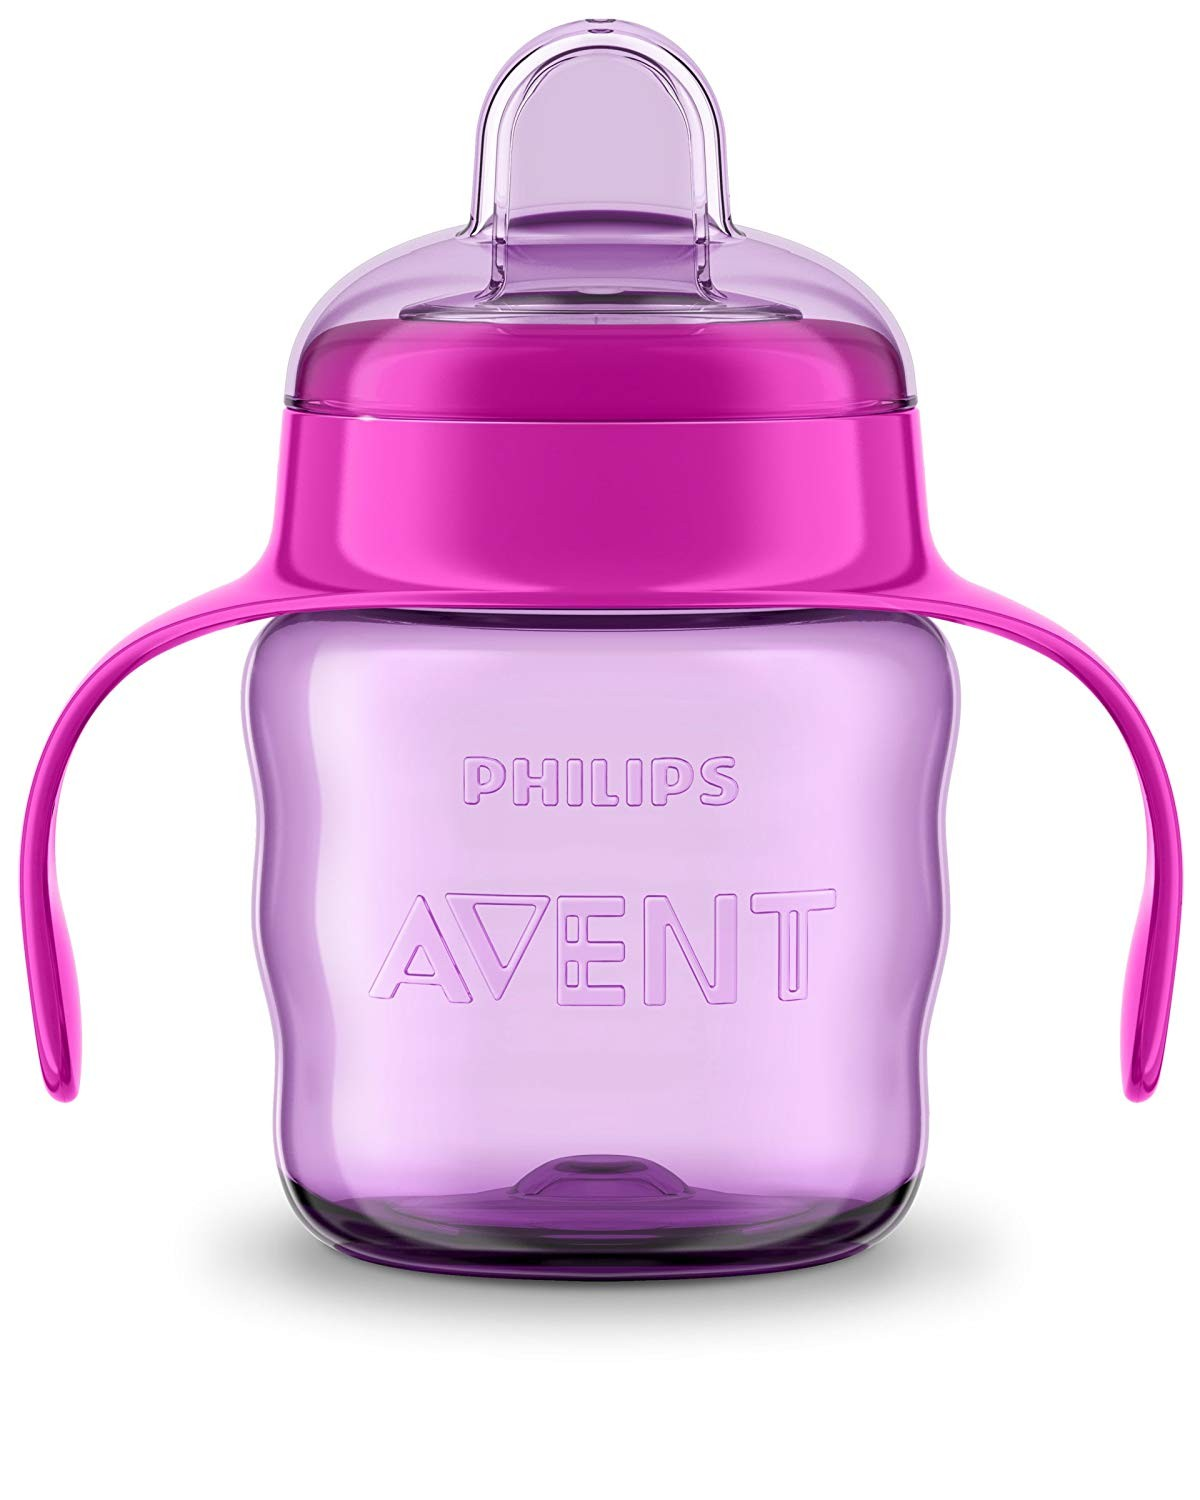 200ml Philips Avent Easy Sip Spout Sippy Cup Easy Hold Handles /& Hygienic Lid